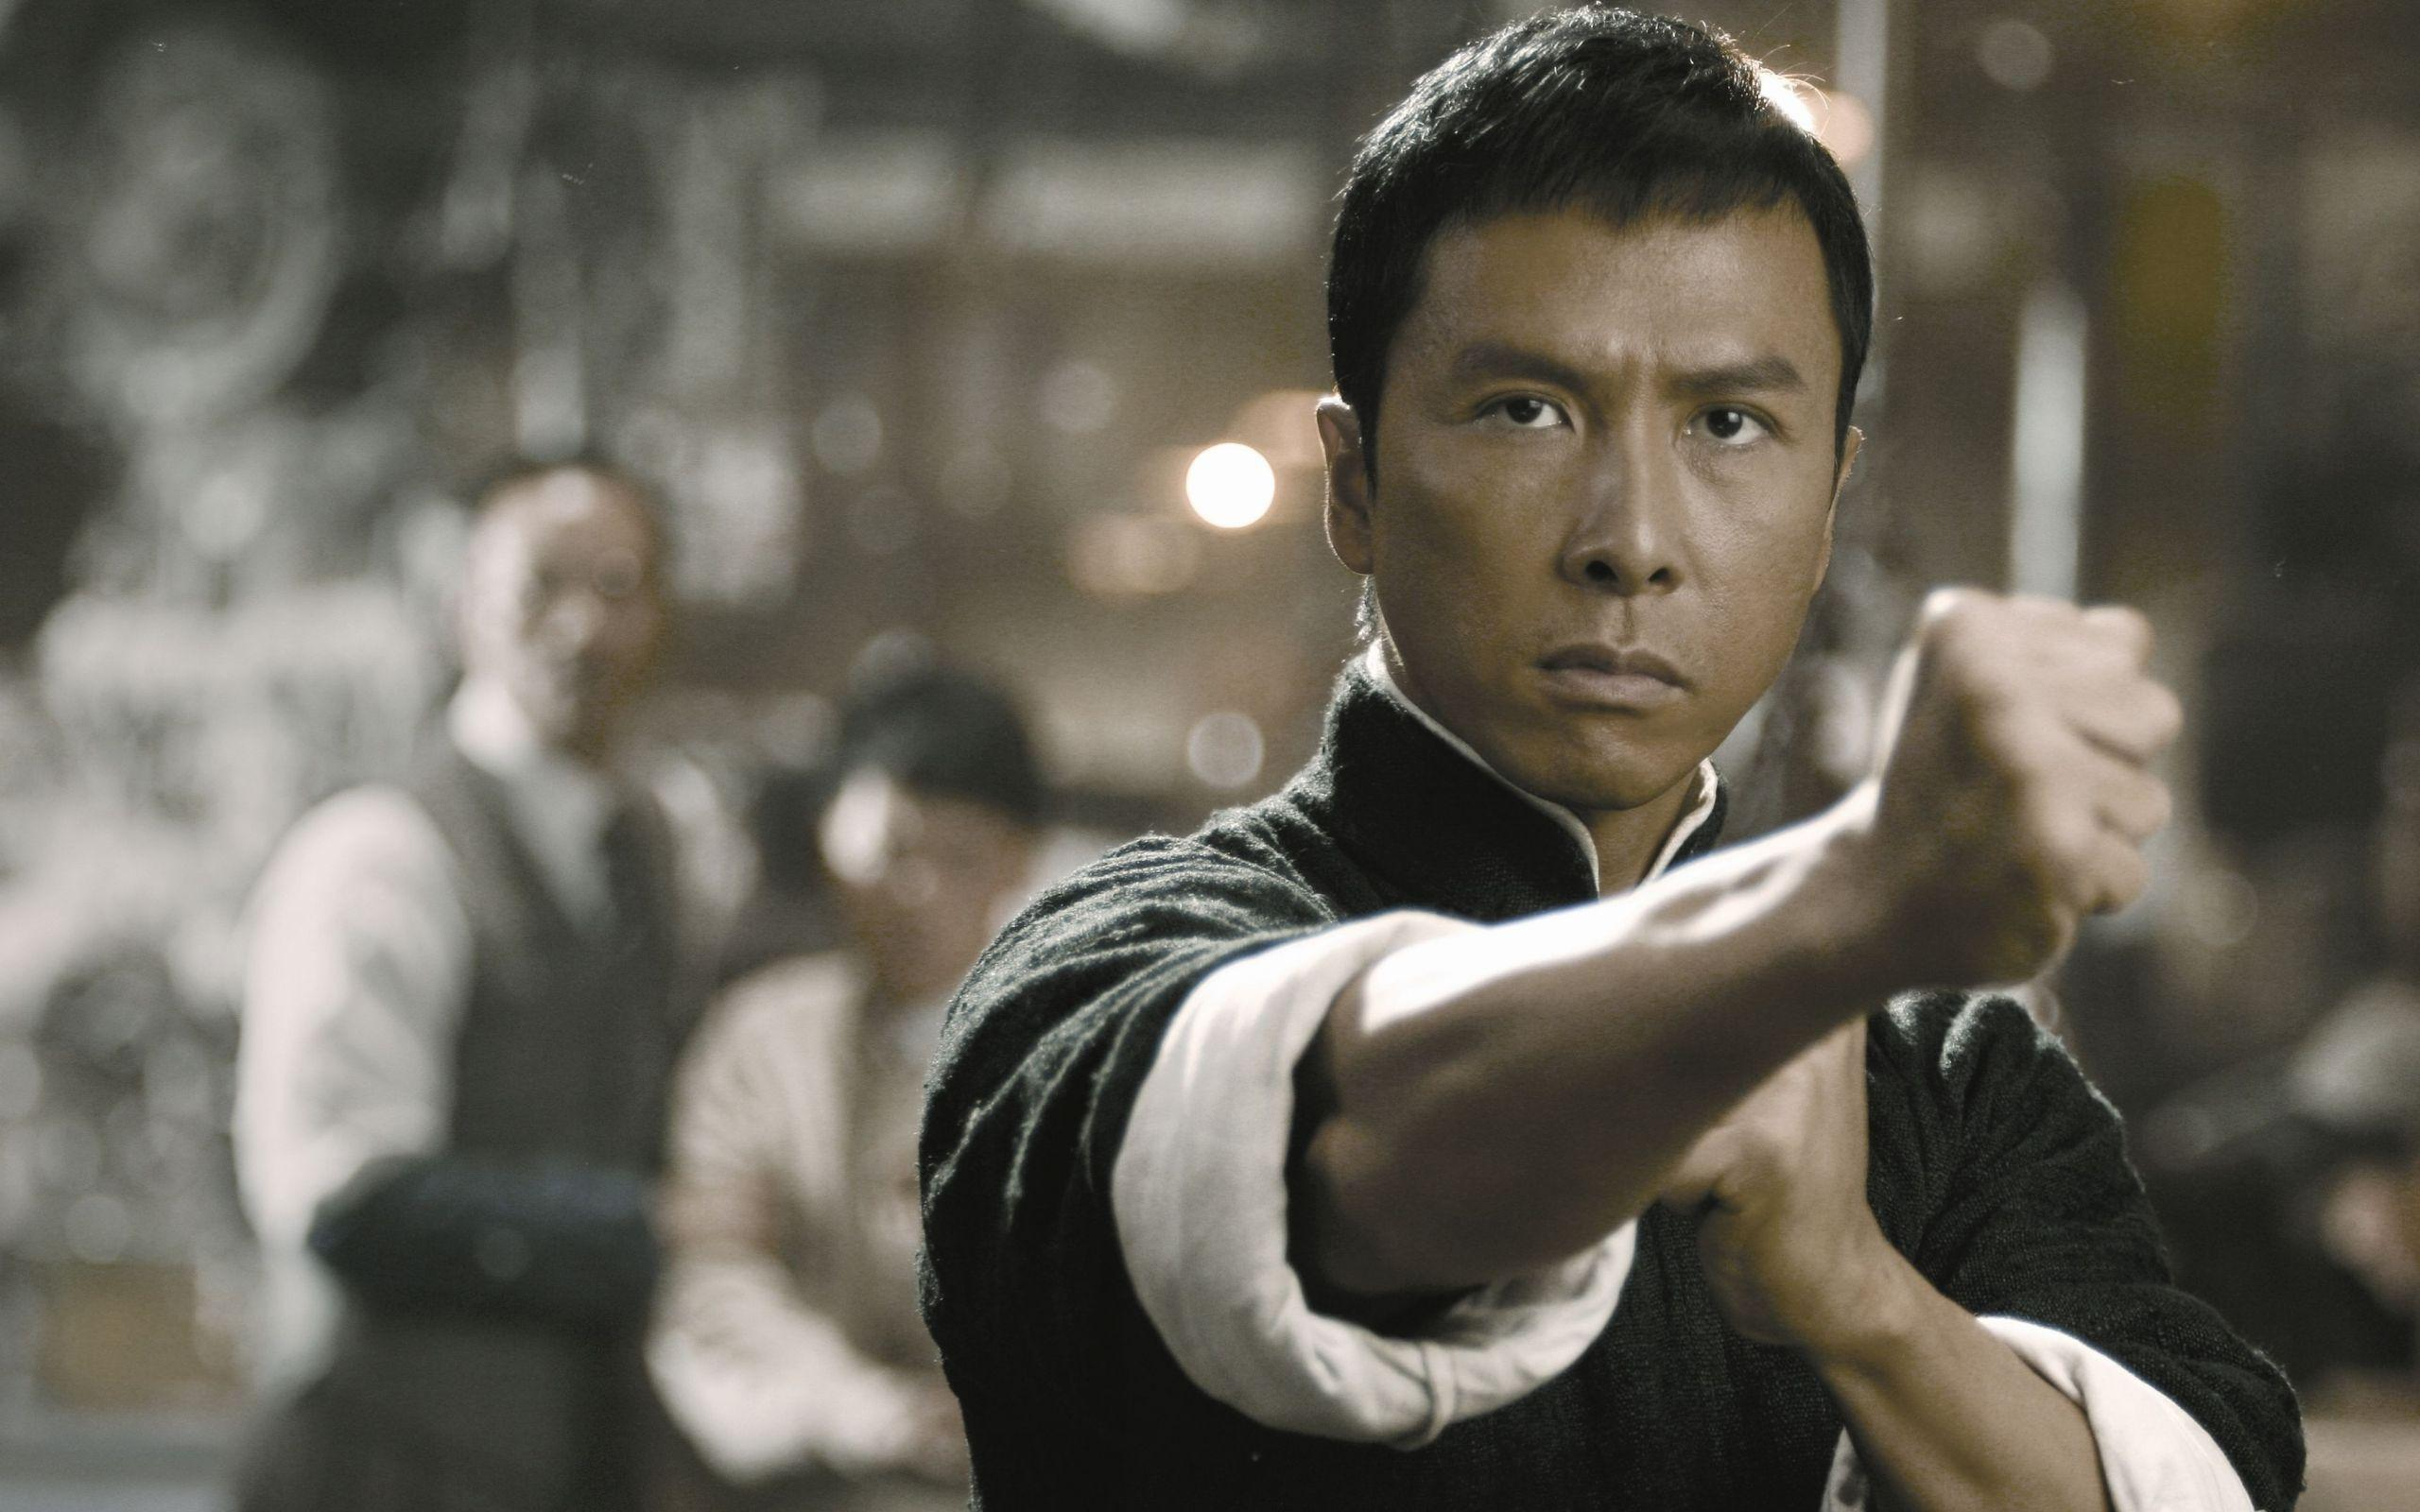 Donnie Yen Wallpapers Top Free Donnie Yen Backgrounds Wallpaperaccess